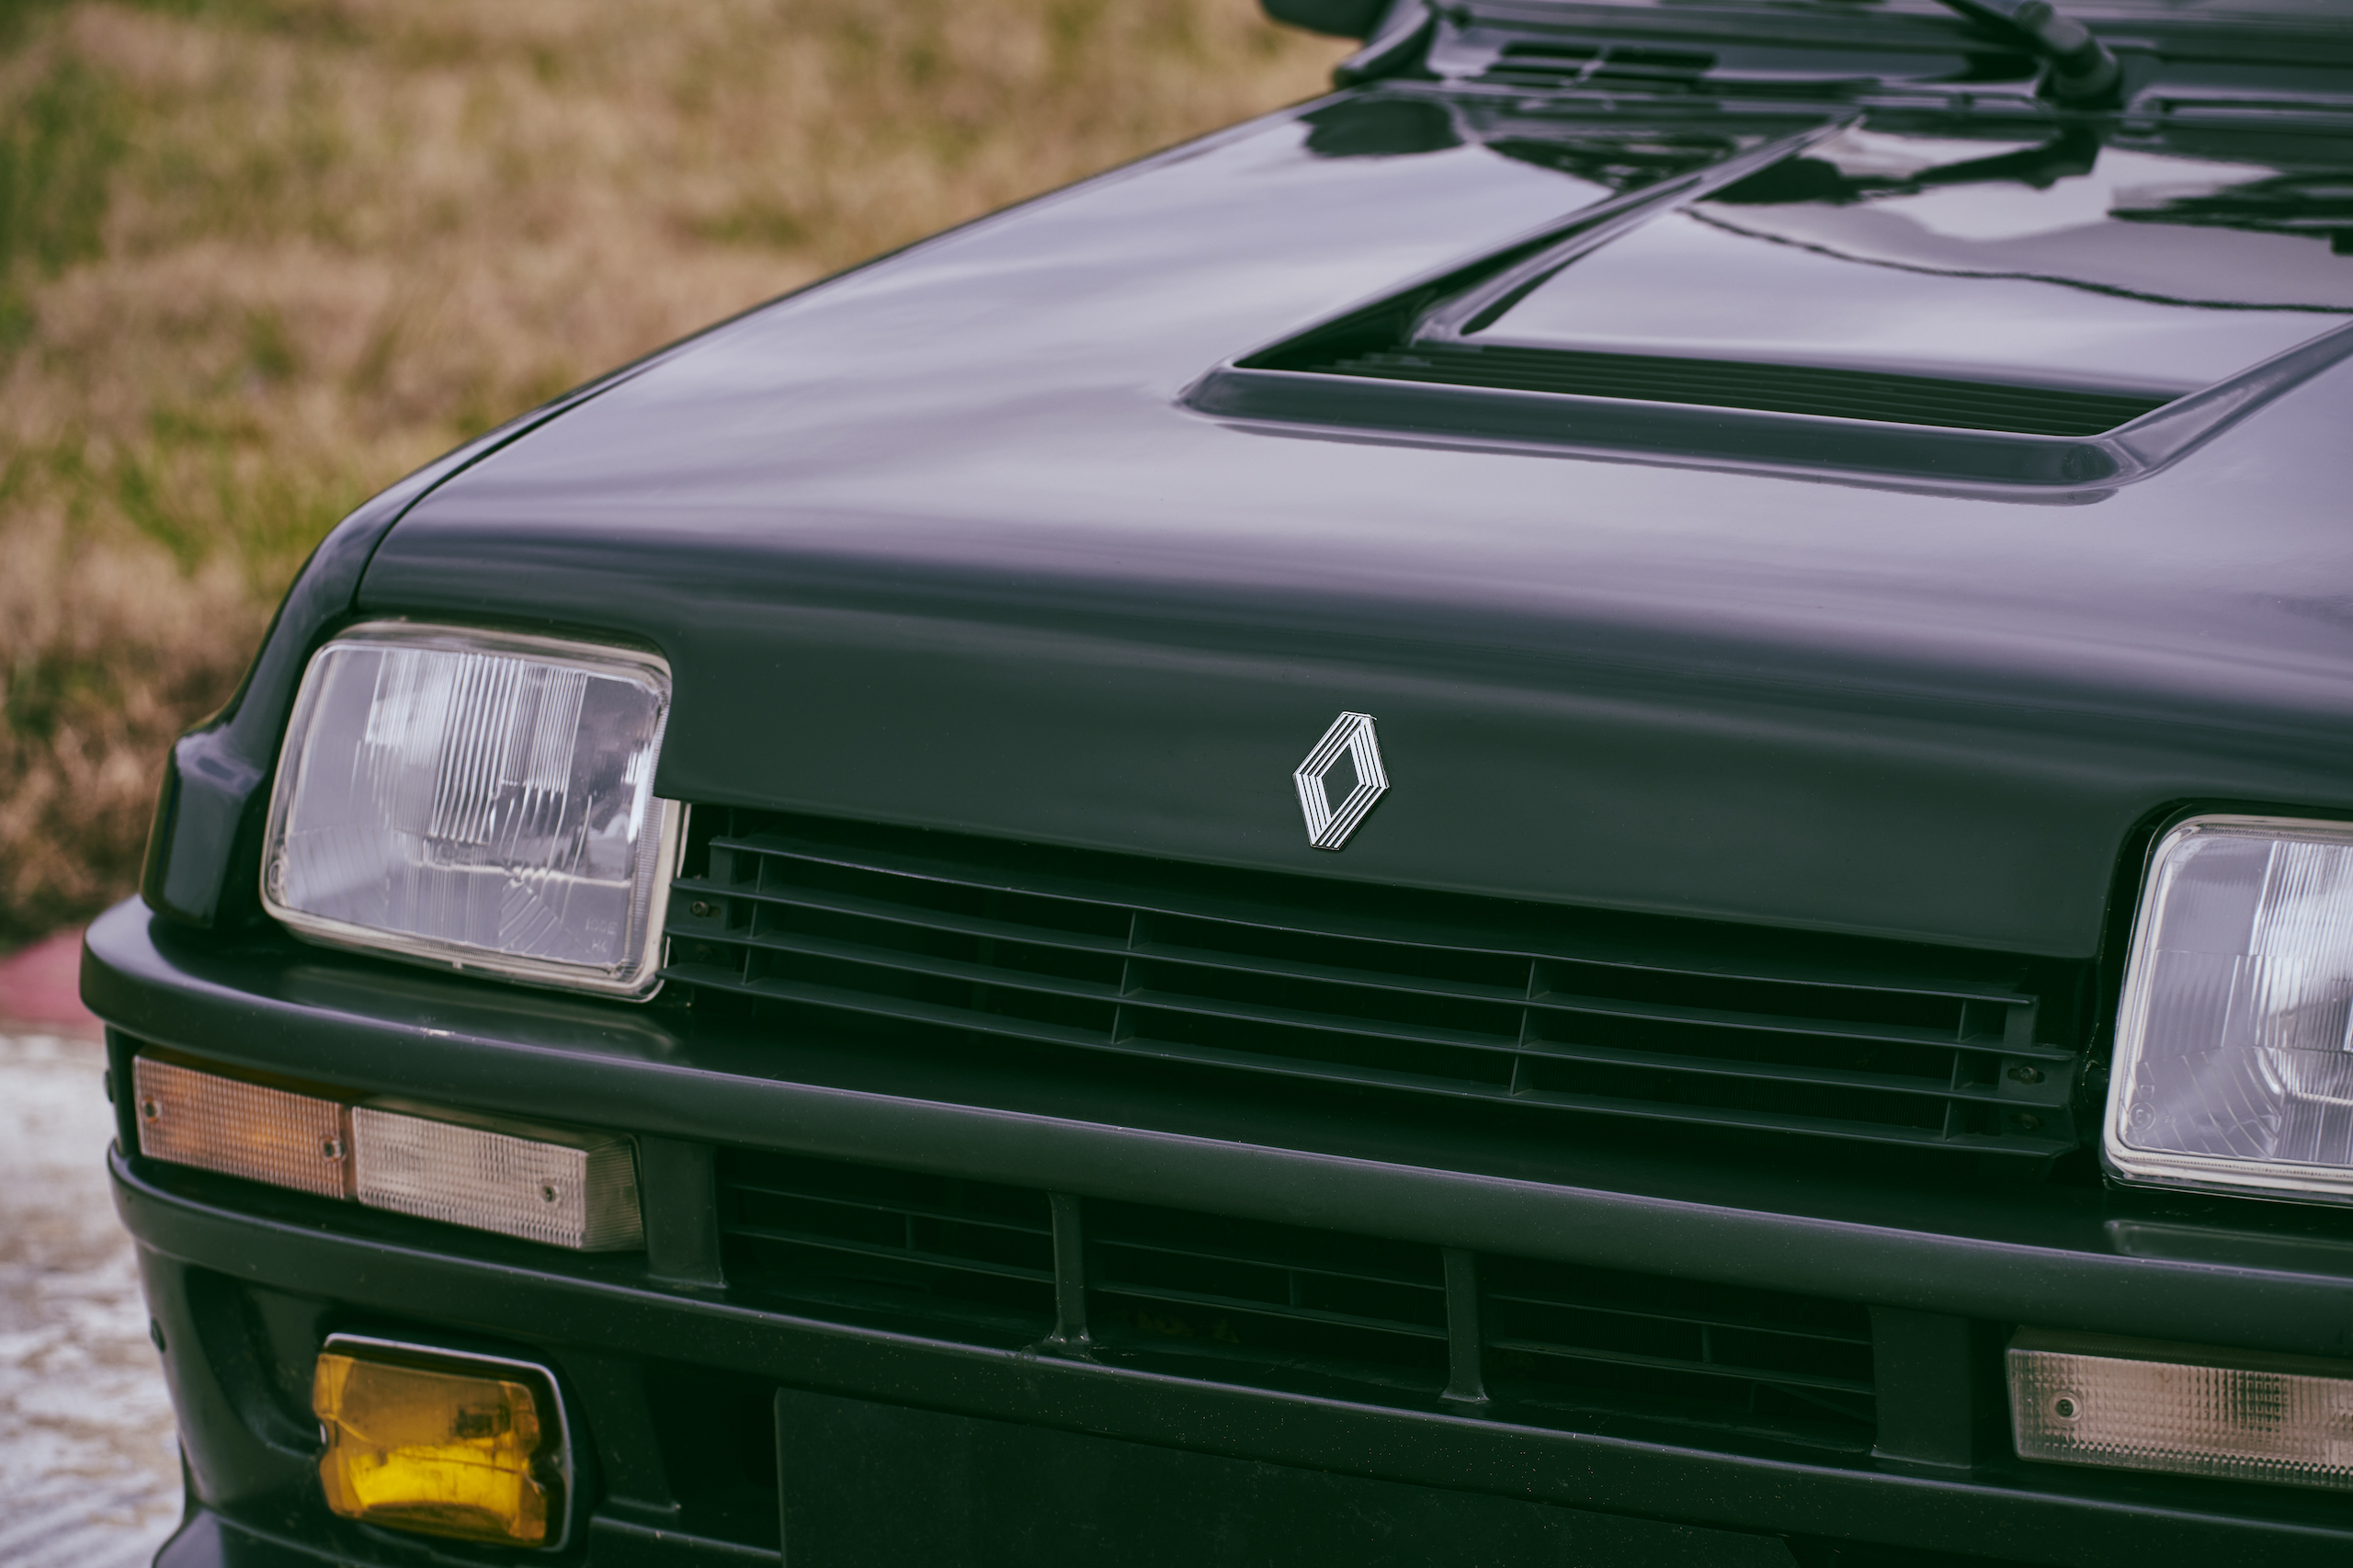 1985 Renault R5 Turbo 2 front detail